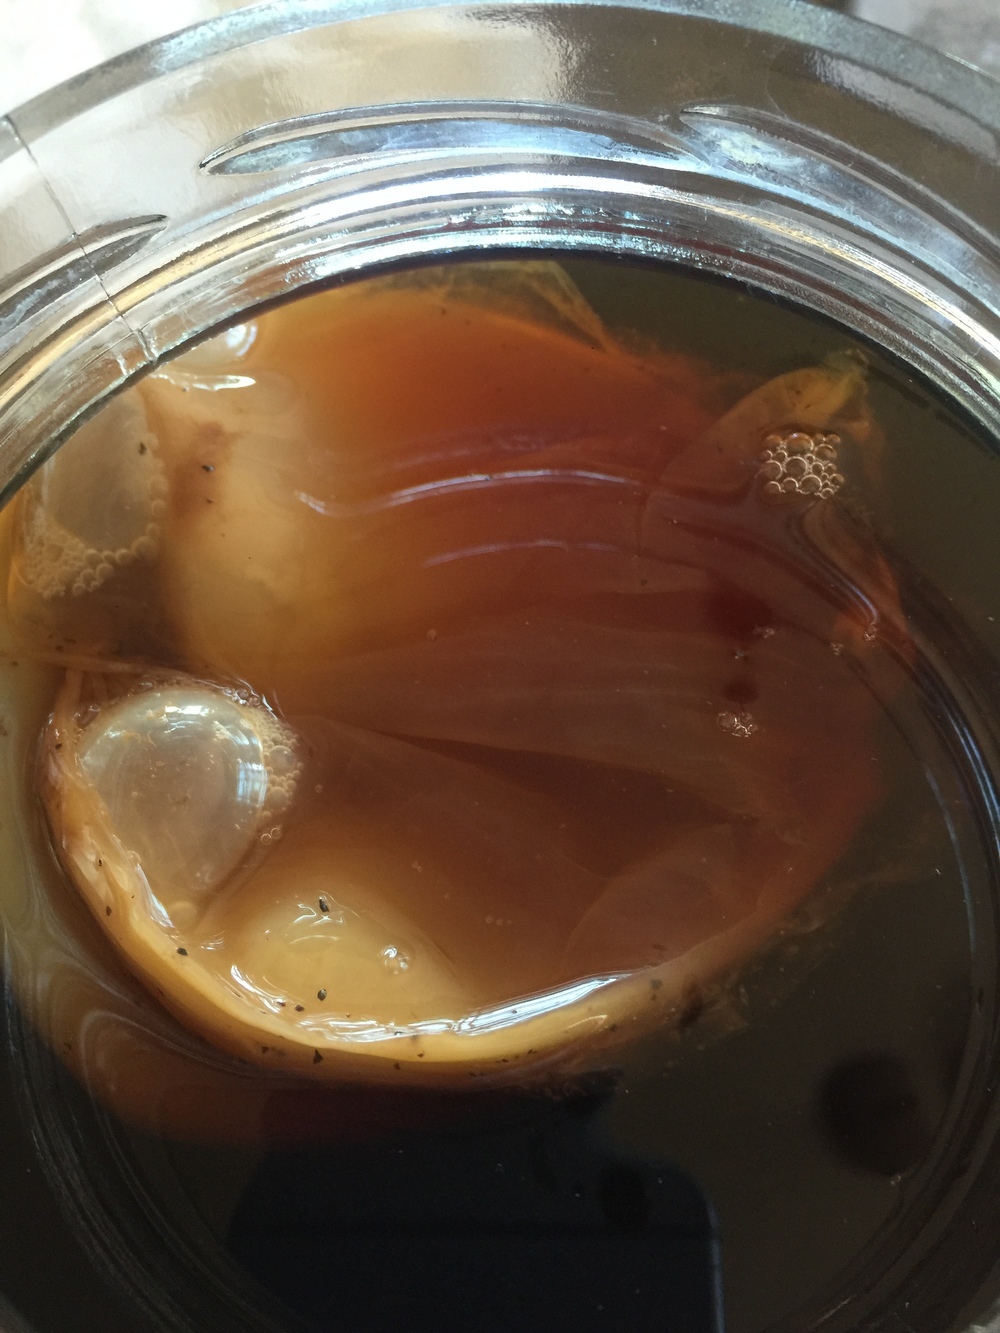 Here is my SCOBY floating at the top of the brew.  It's fine if it floats, or it may sink to the bottom.  It's all good.  As long as you see bubbles in a few days, you're fine! Over the next few days, you will notice your SCOBY floating to the top!  That's a great sign!